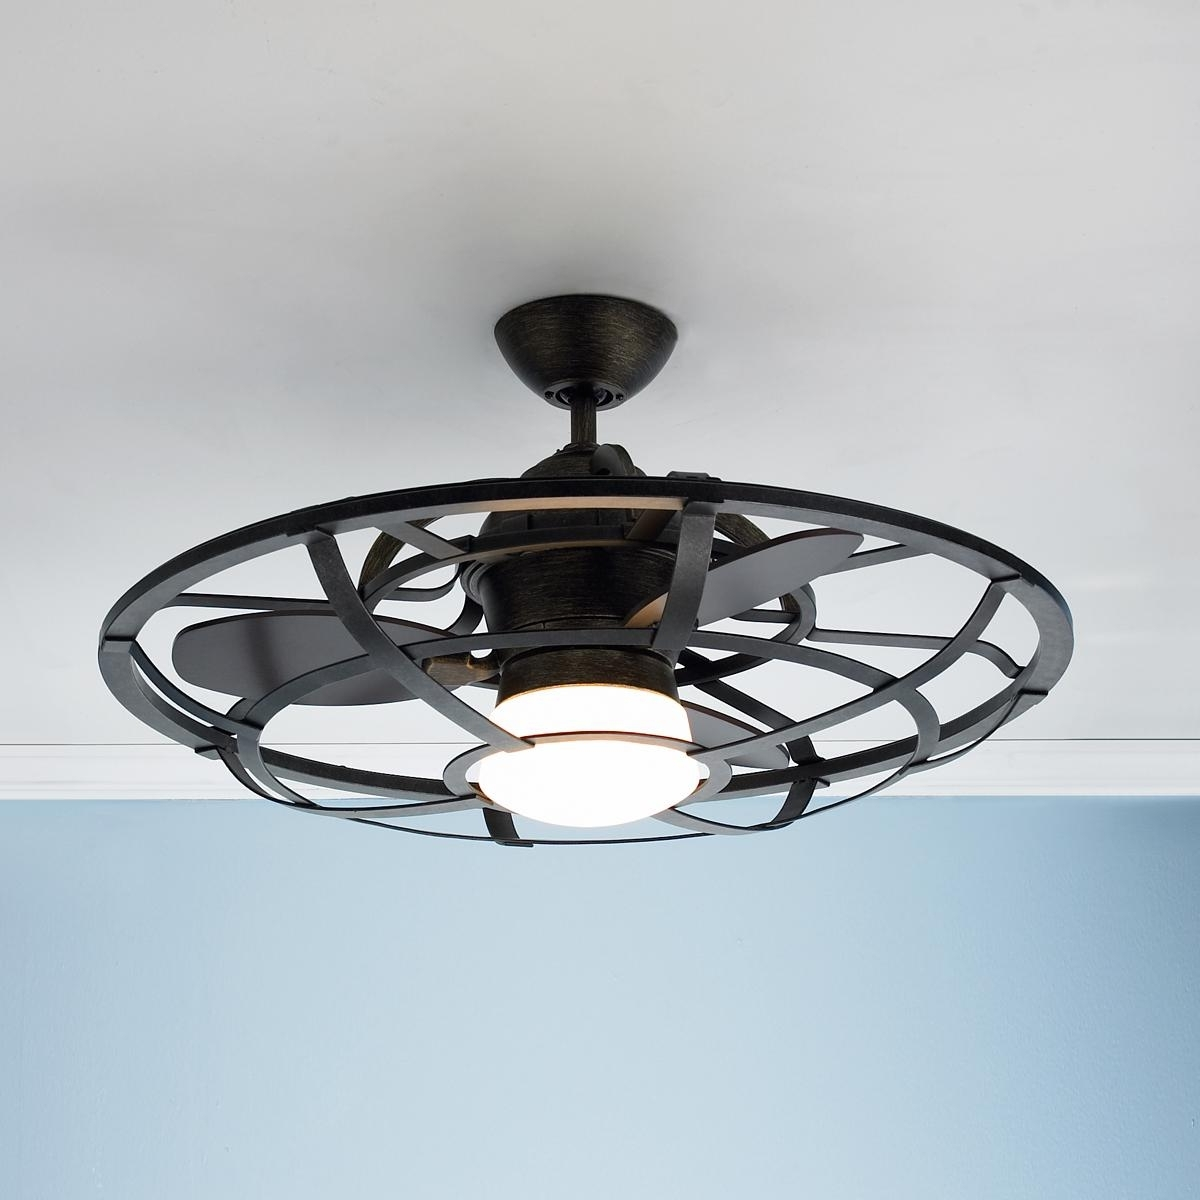 Outdoor Ceiling Fans For Canopy Inside Most Recent Stylish Ceiling Fan For Garage With Lights — Ganncellars (View 13 of 20)